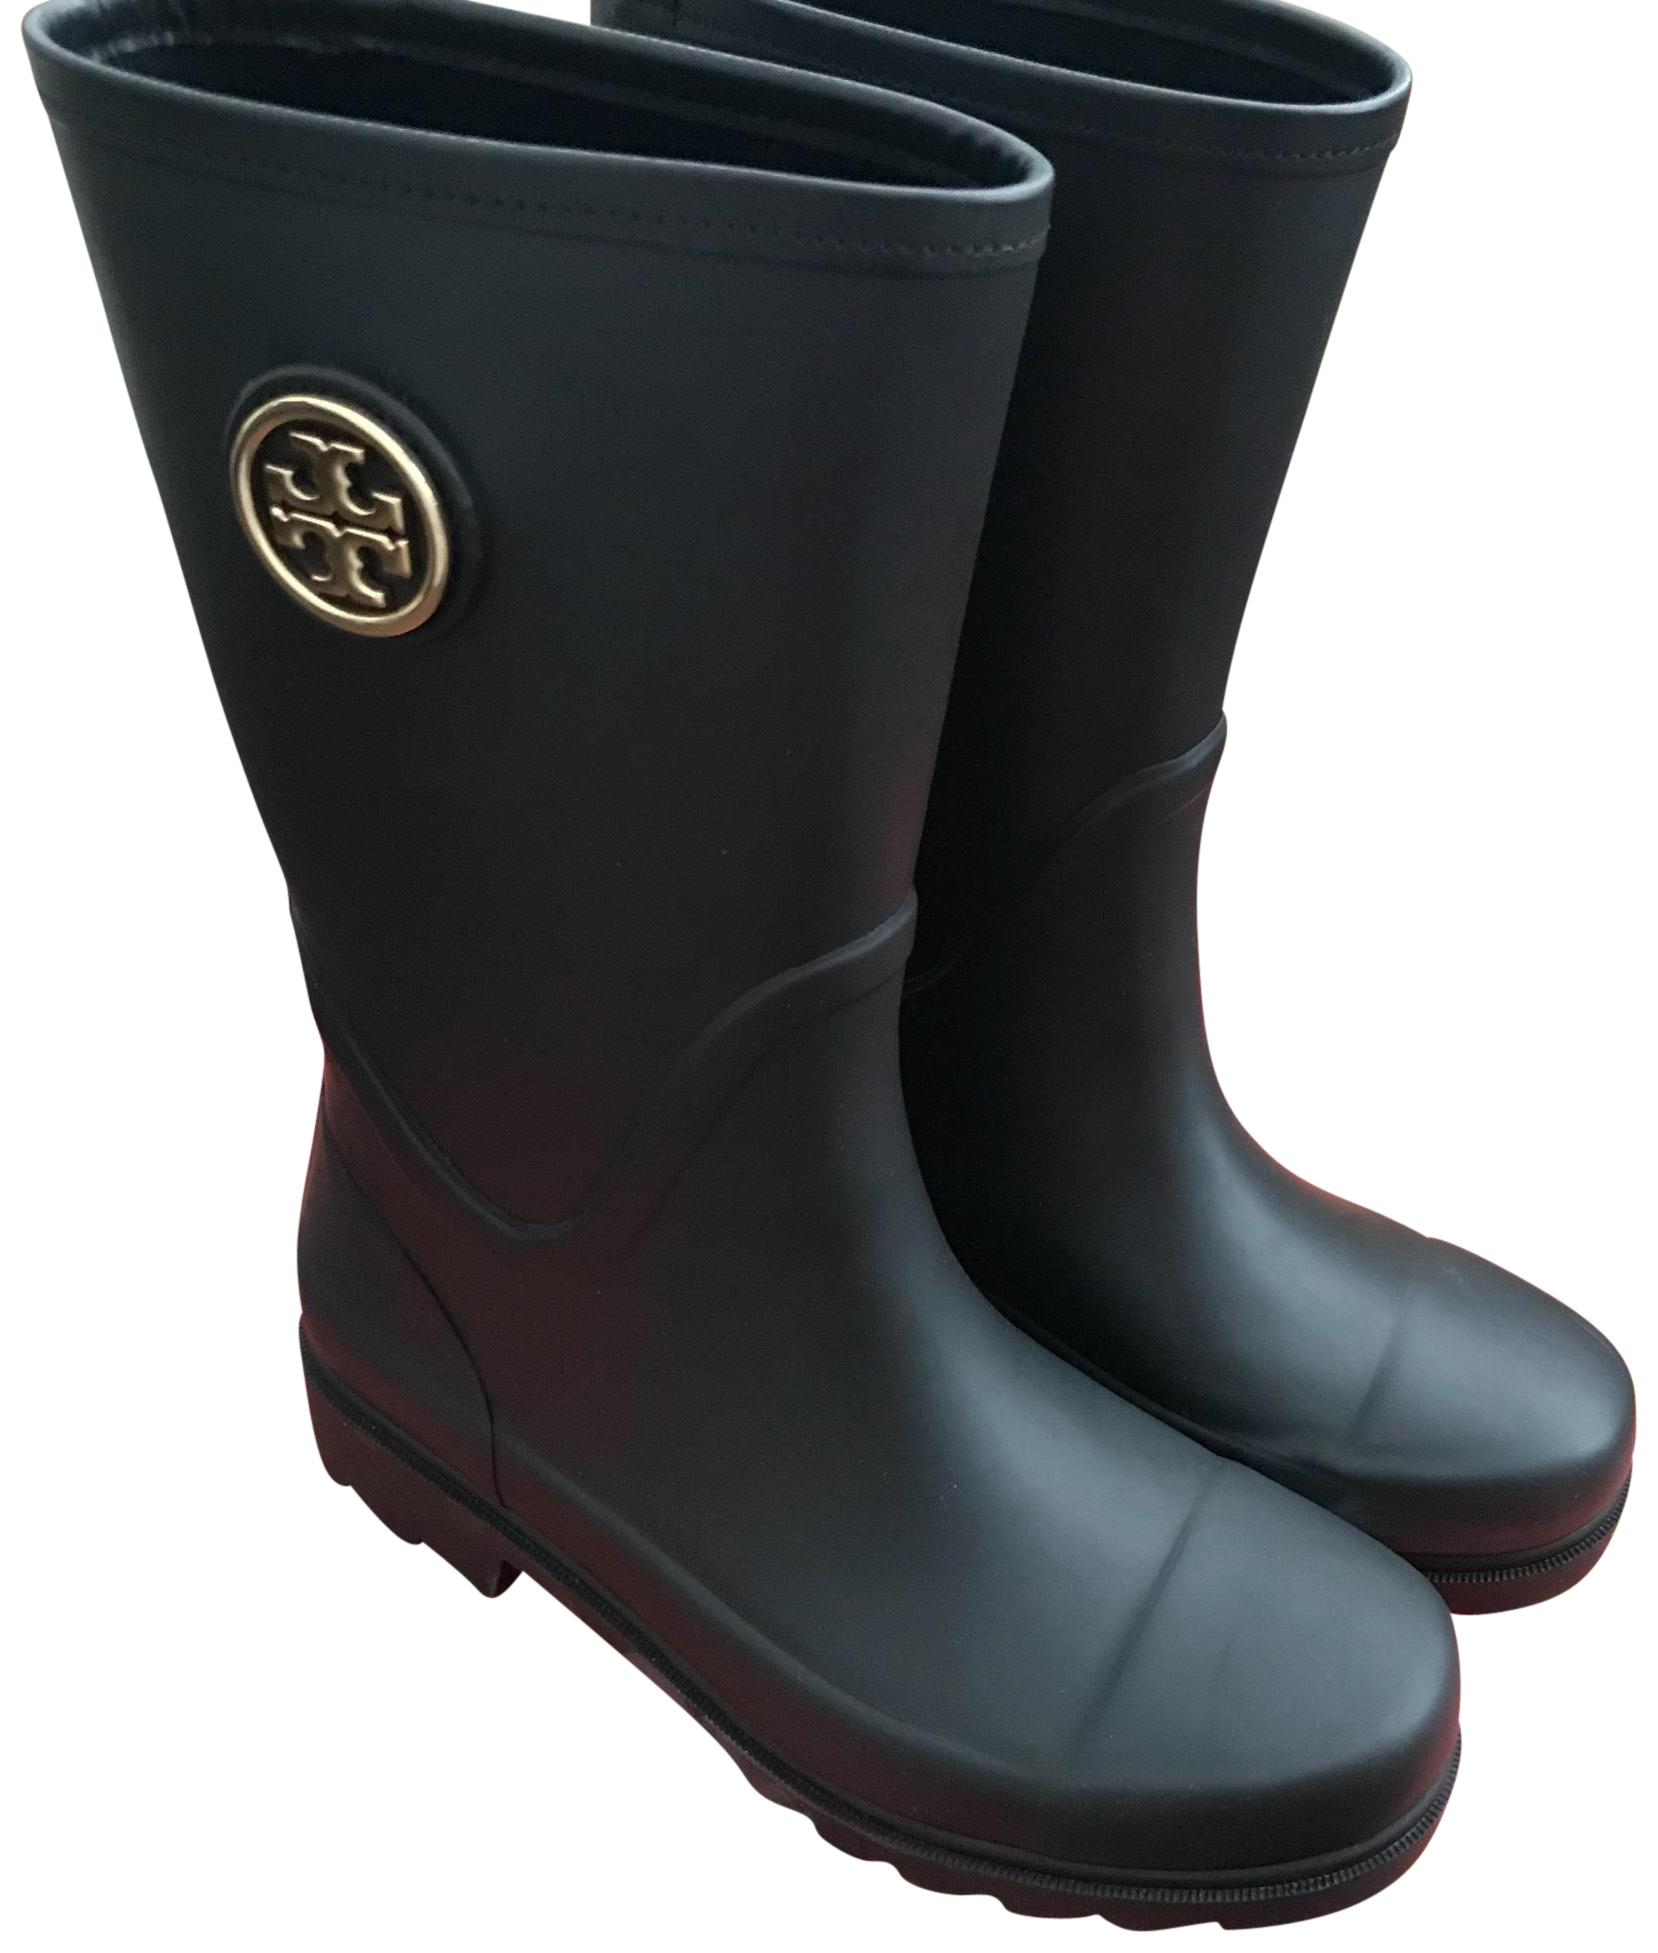 5113fe83c02c where to buy tory burch boot 360 blue 9ccb0 5a270